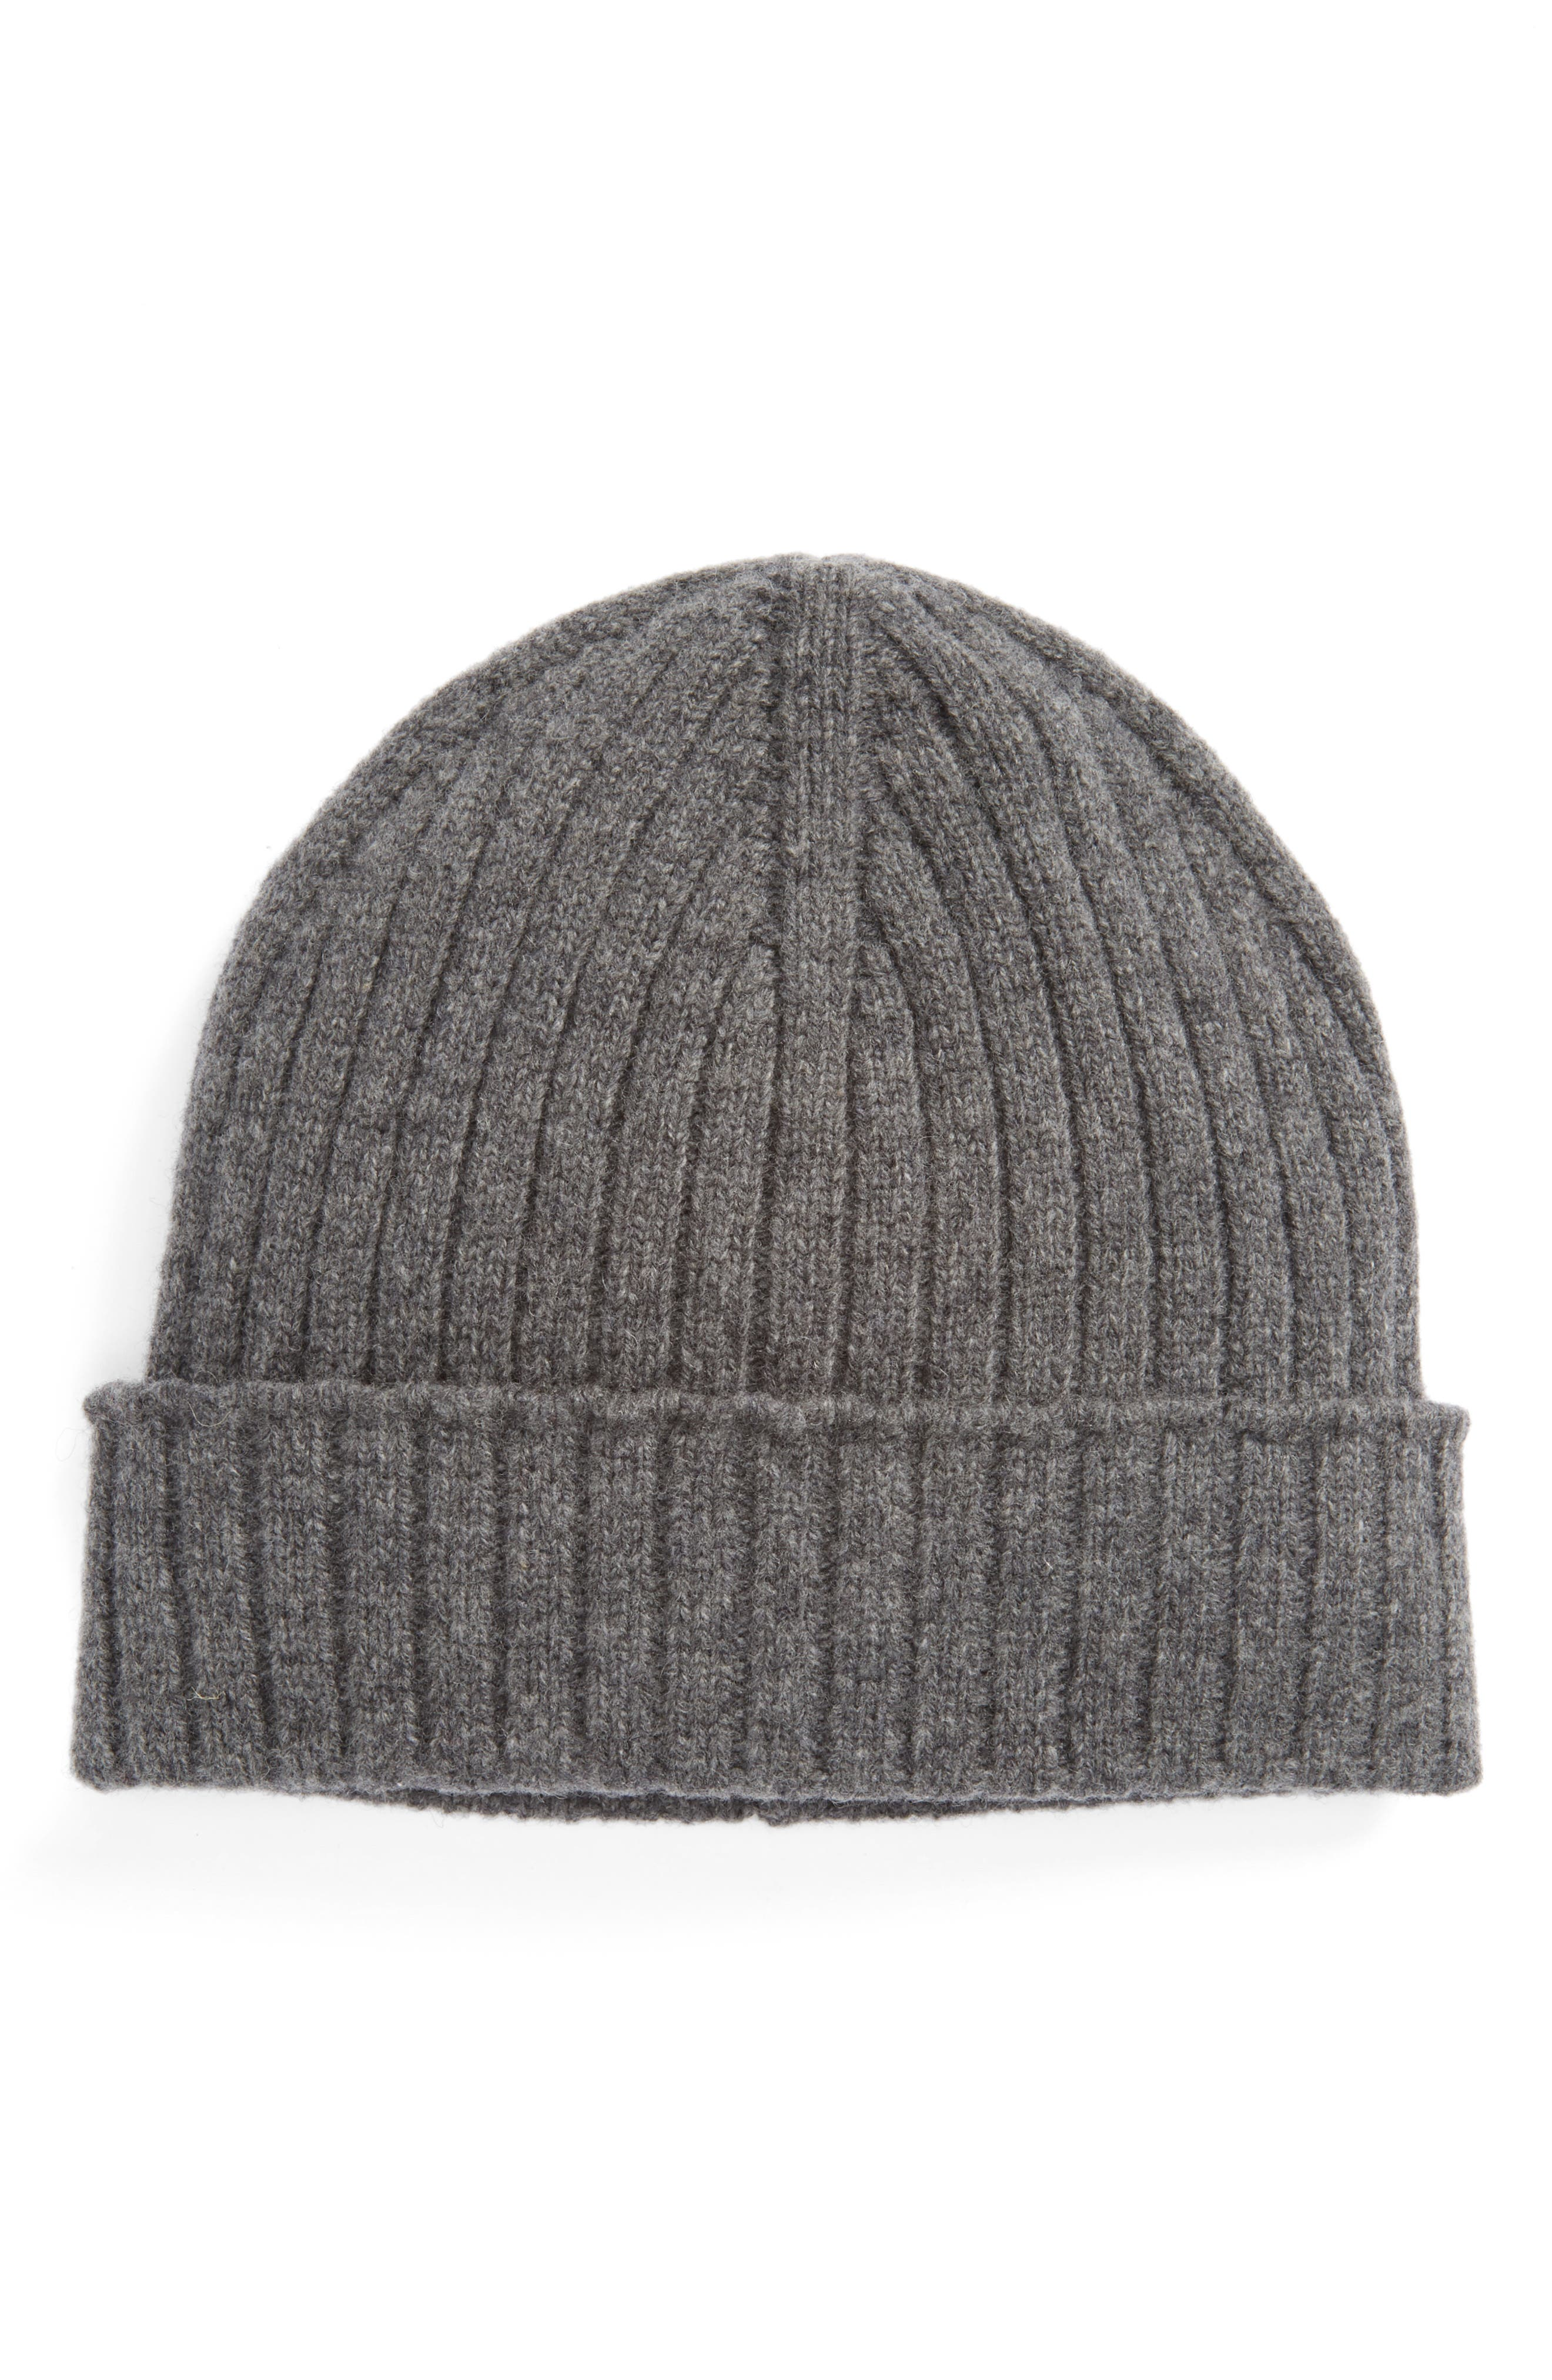 Alternate Image 1 Selected - A.P.C. Wool Knit Cap